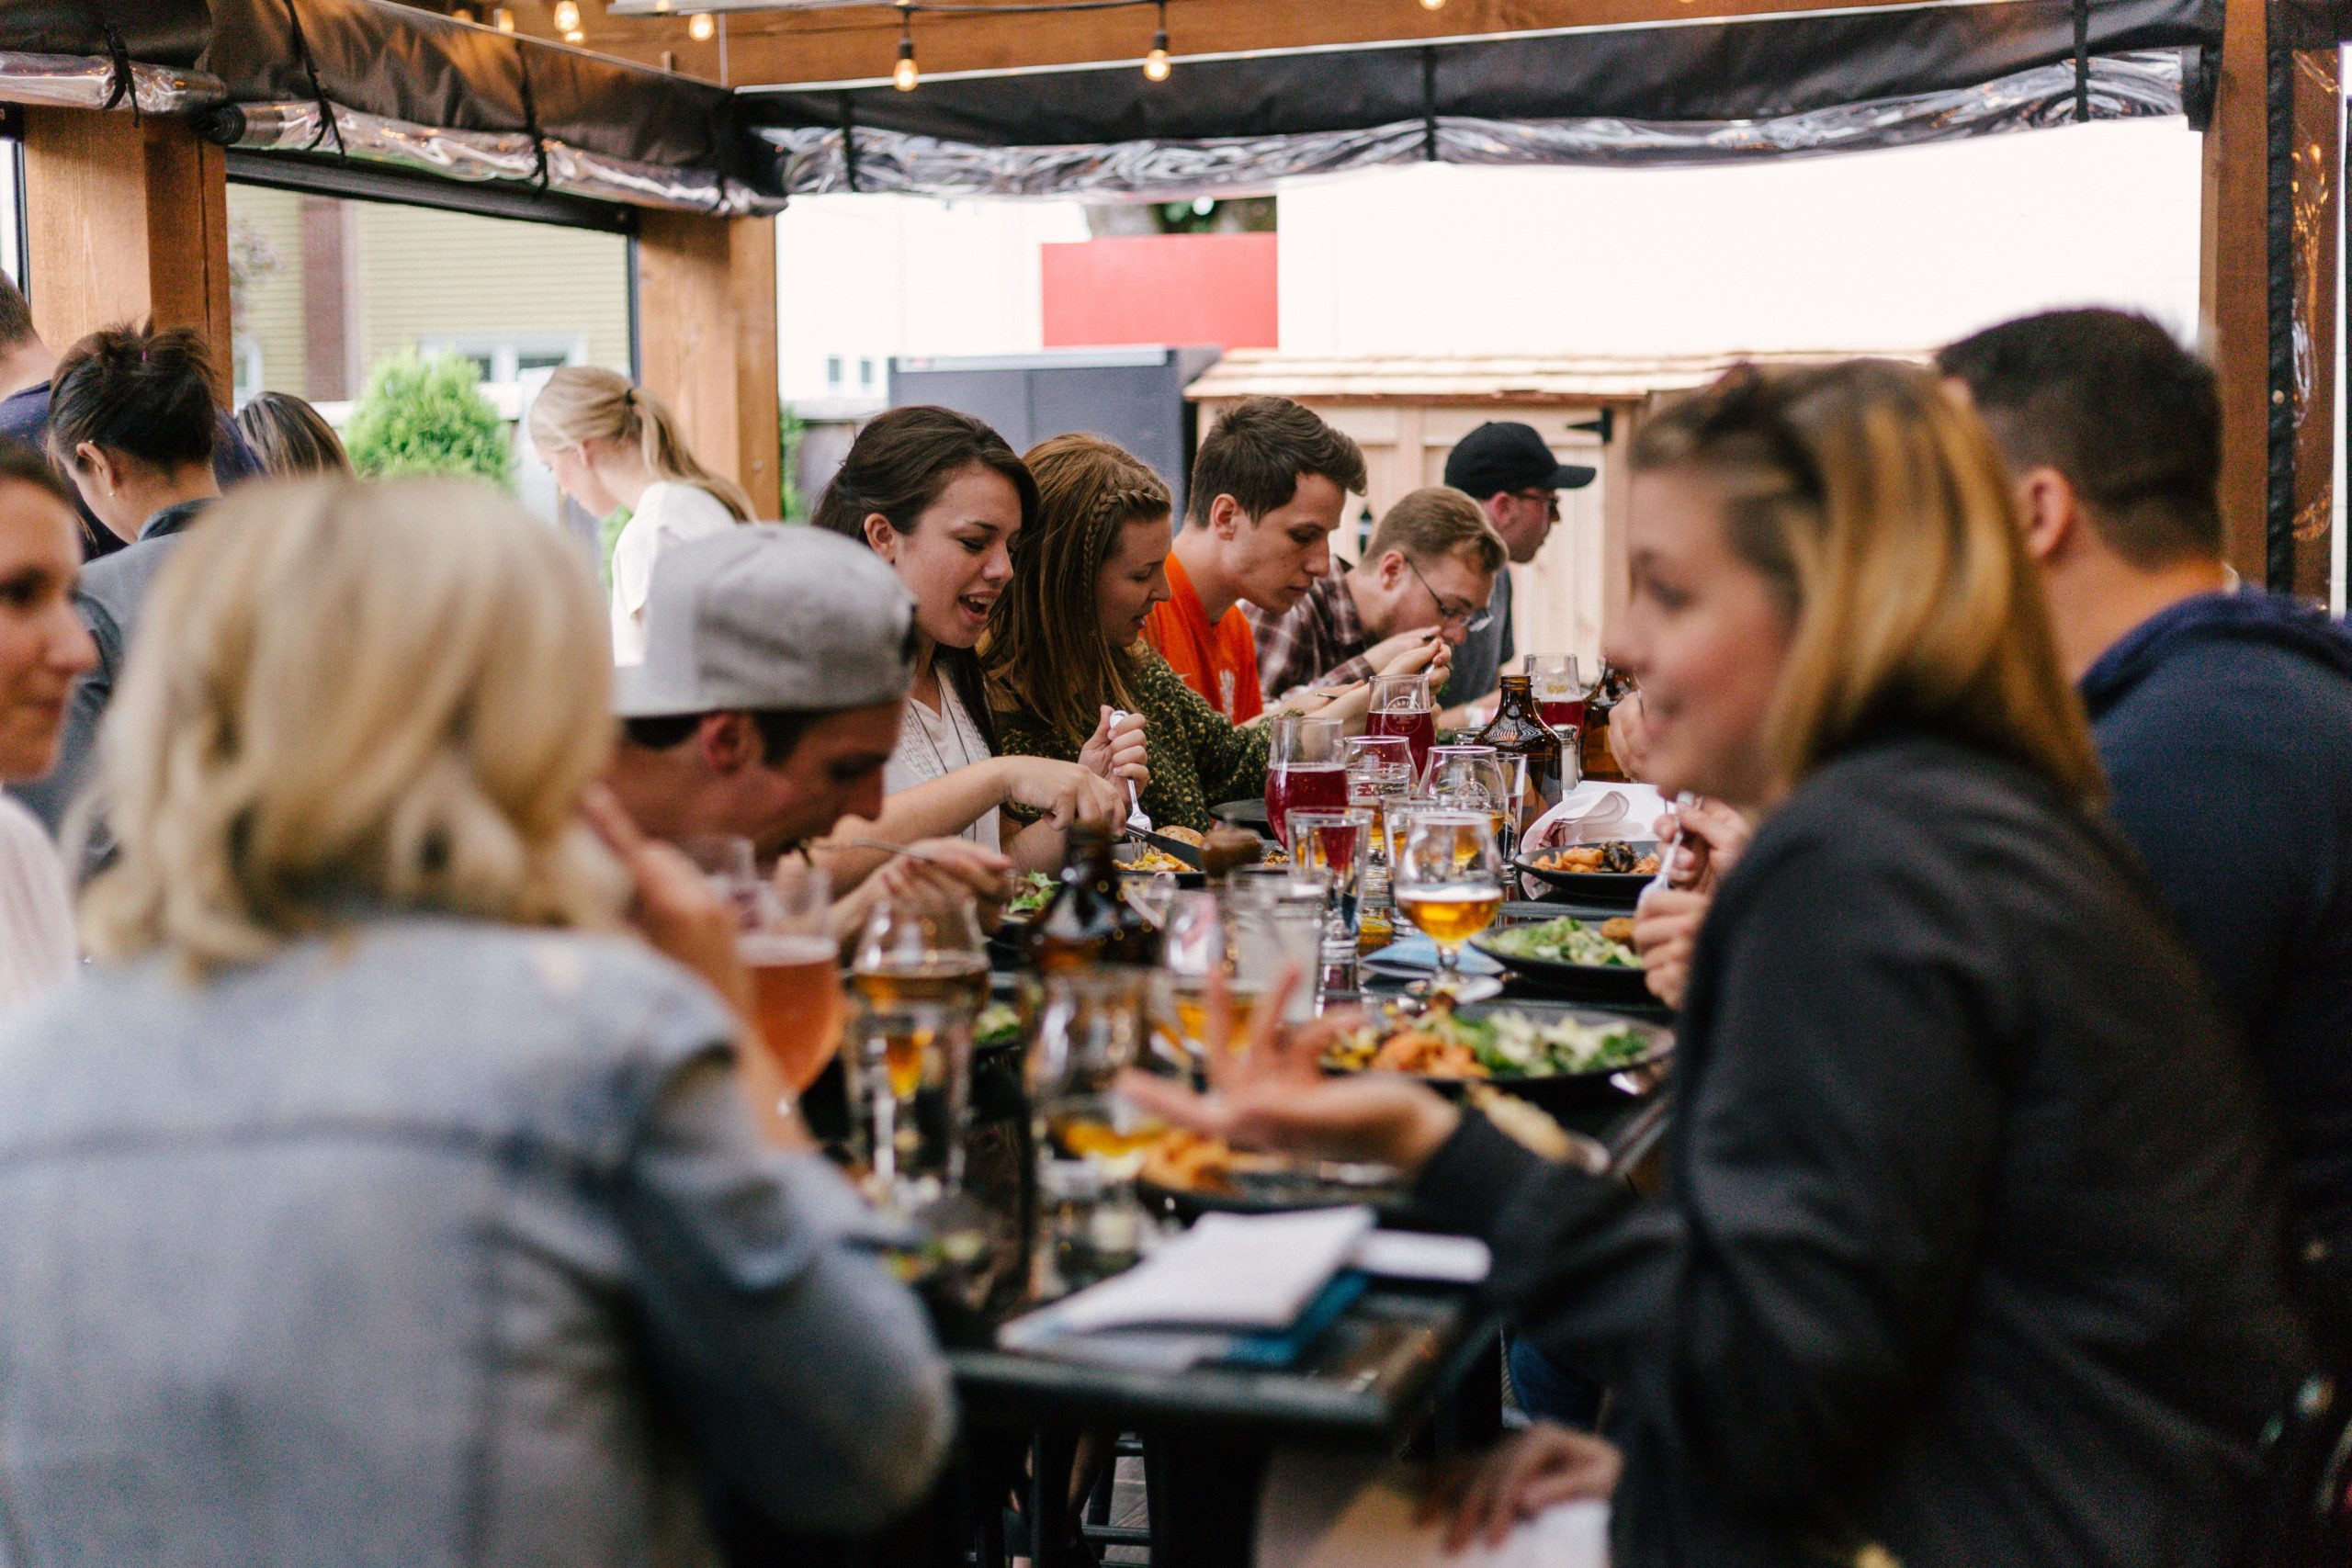 People eating a meal around a restaurant table of a restaurant with a 360 virtual tour